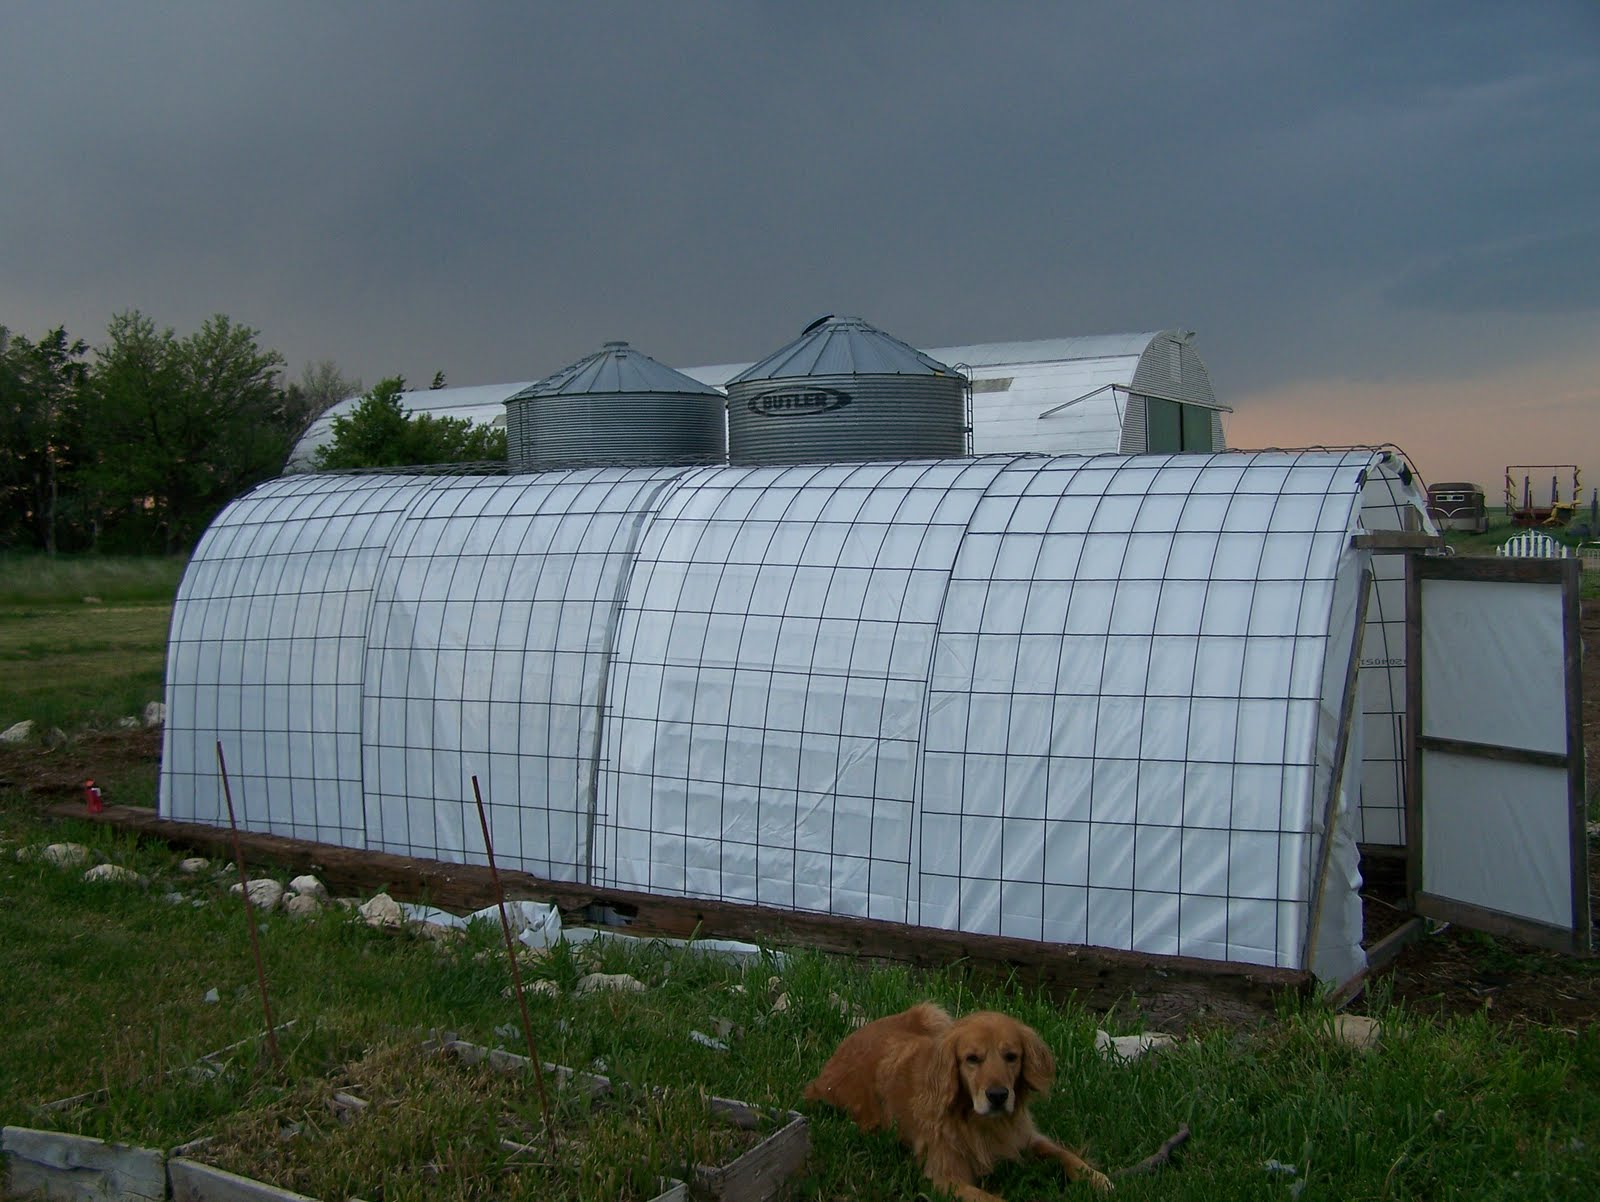 gothic arch greenhouse plans html with Pvc Green House on Build Shed Roof Youtube 19 together with Gothic Floor Plans furthermore Portable Greenhouse Diy Kit also Pvc Green House moreover Greenhouse Wood.